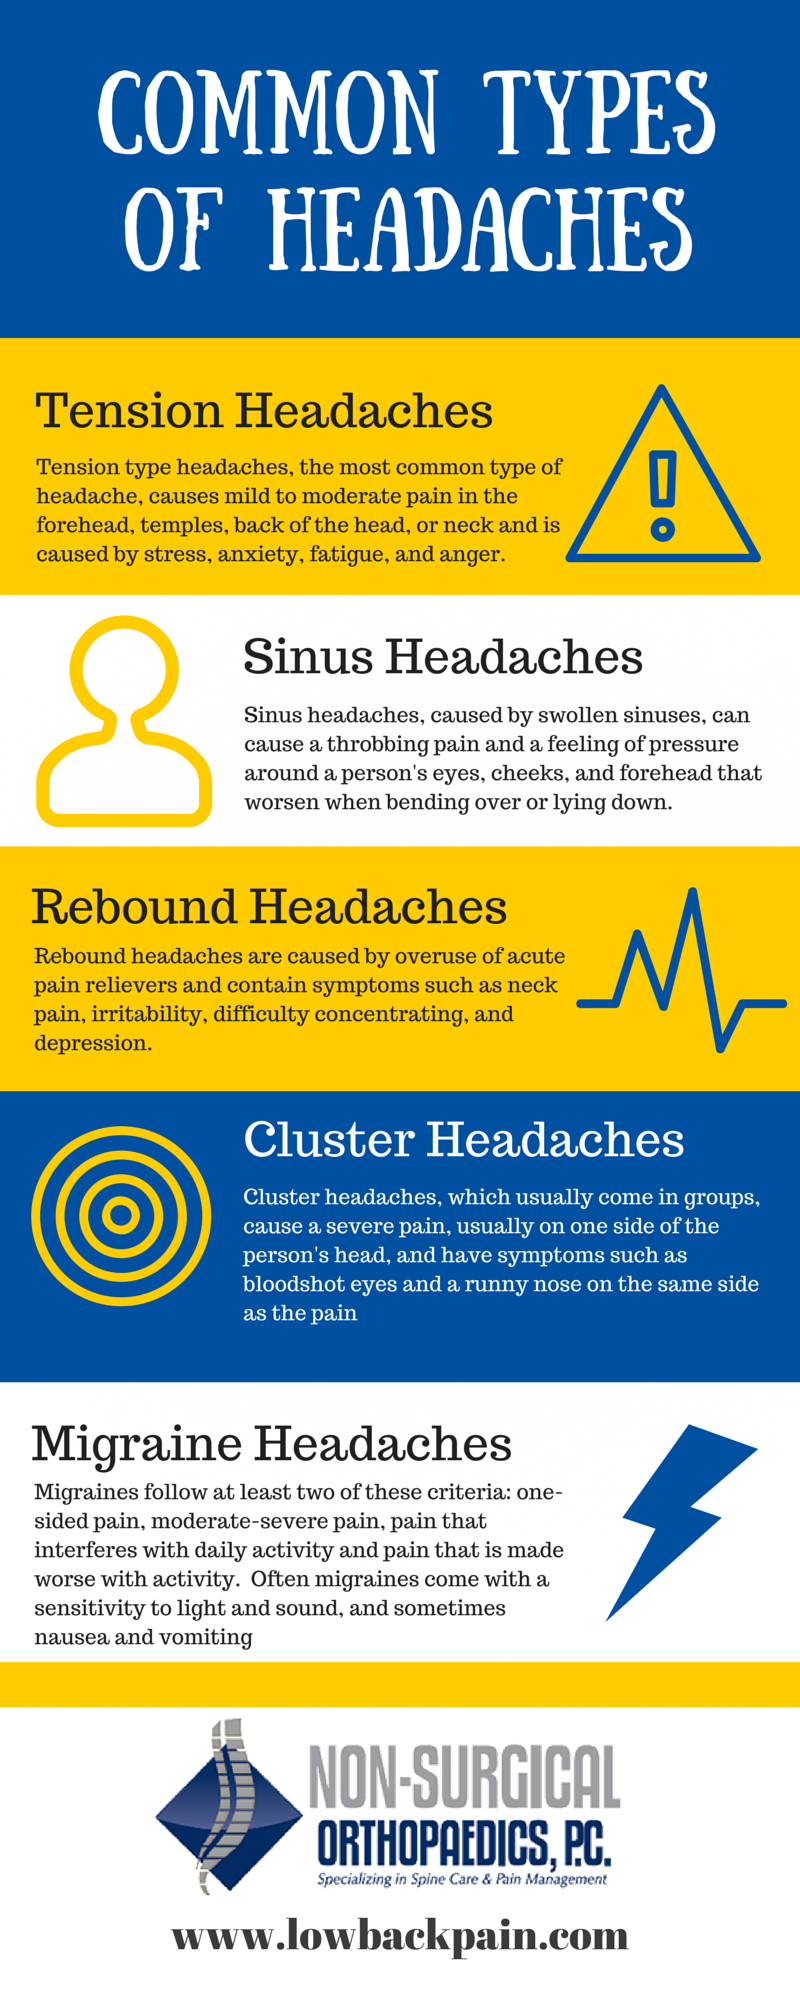 Common Types of Headaches (2)